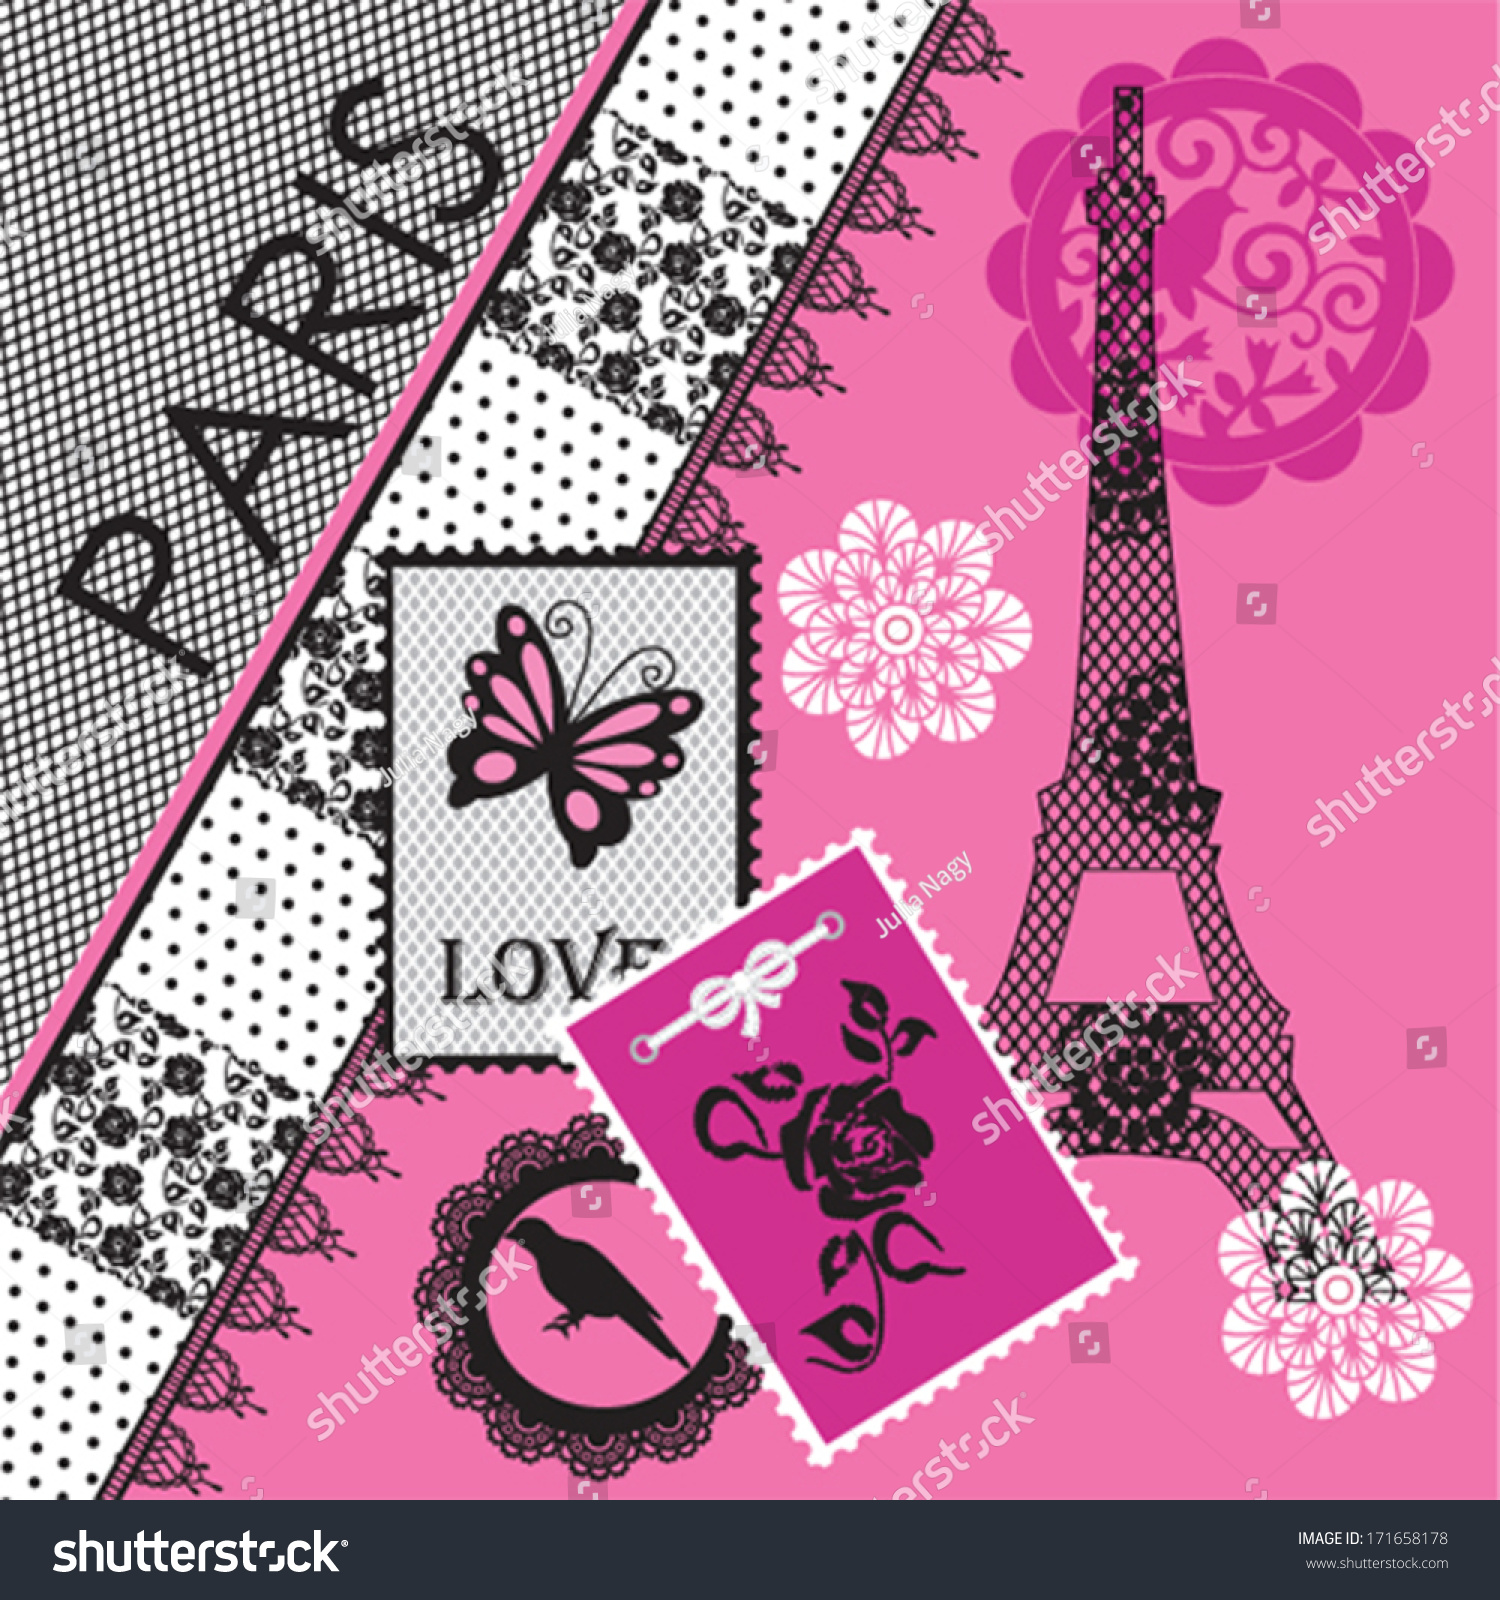 Paris Eiffel Tower Invitation Card Background Stock Vector ...